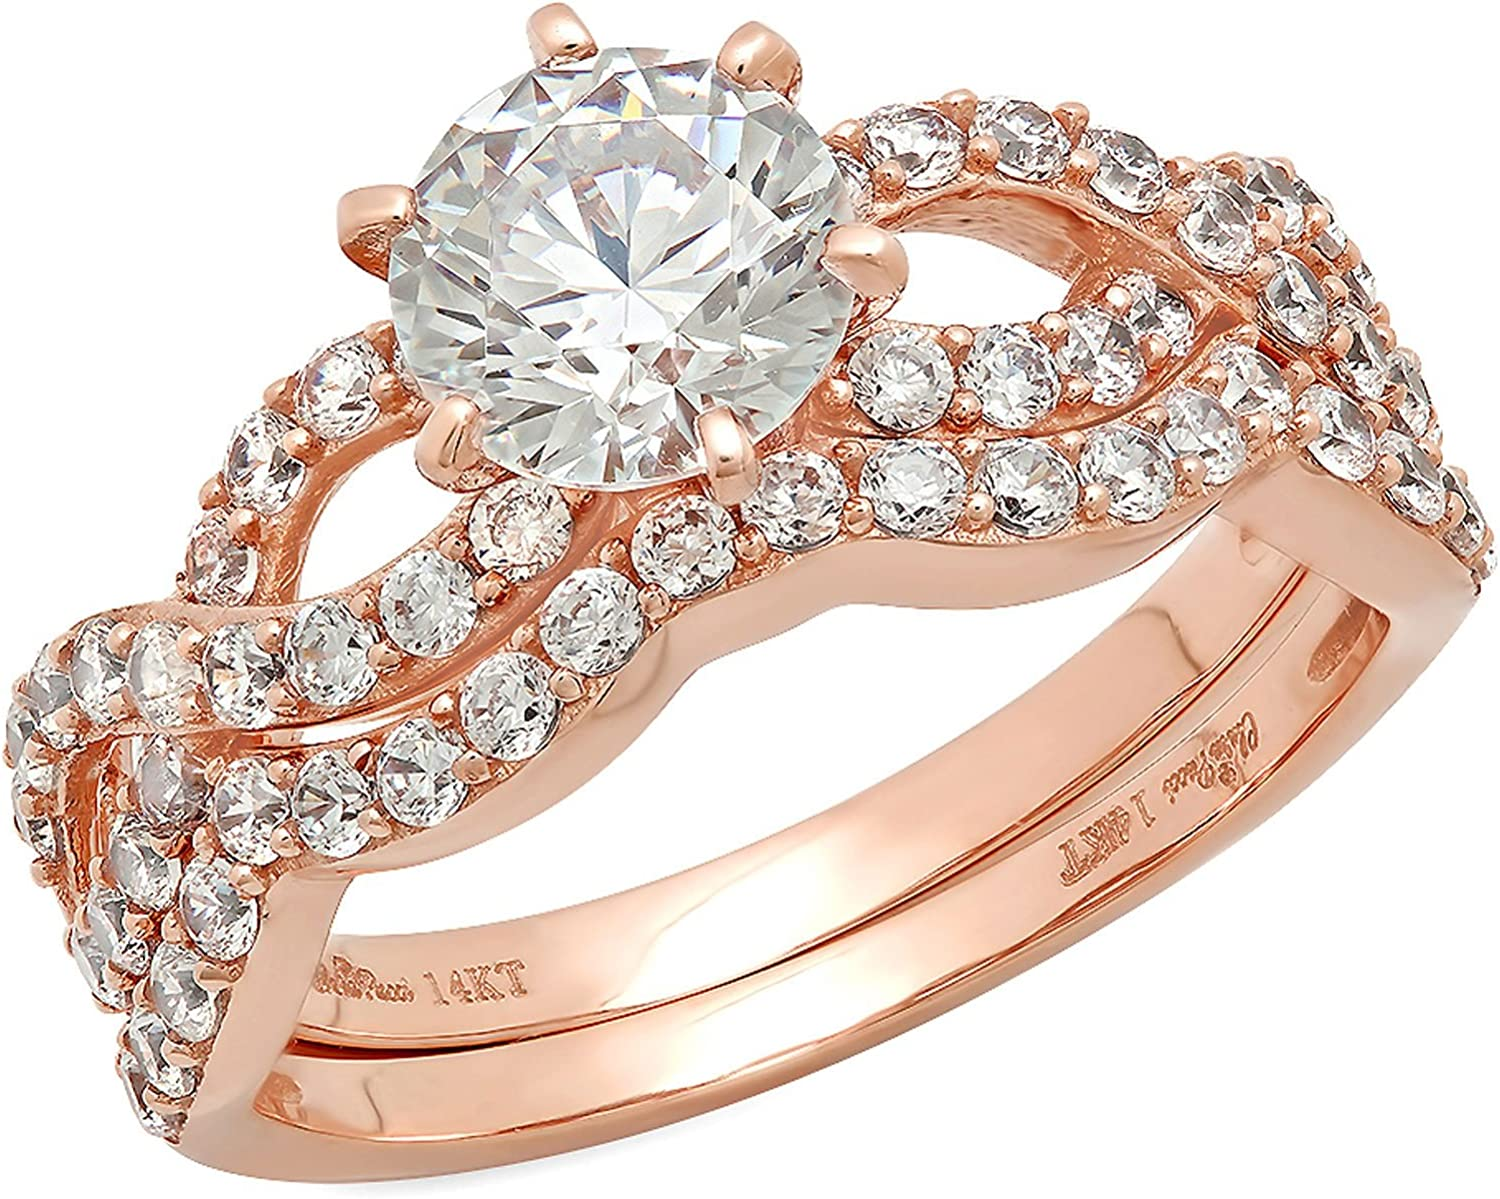 1.55ct Round Cut Halo Pave Solitaire Split Shank Accent Genuine Moissanite & Simulated Diamond Engagement Promise Statement Anniversary Bridal Wedding Ring Curved Band set 14k Rose Gold